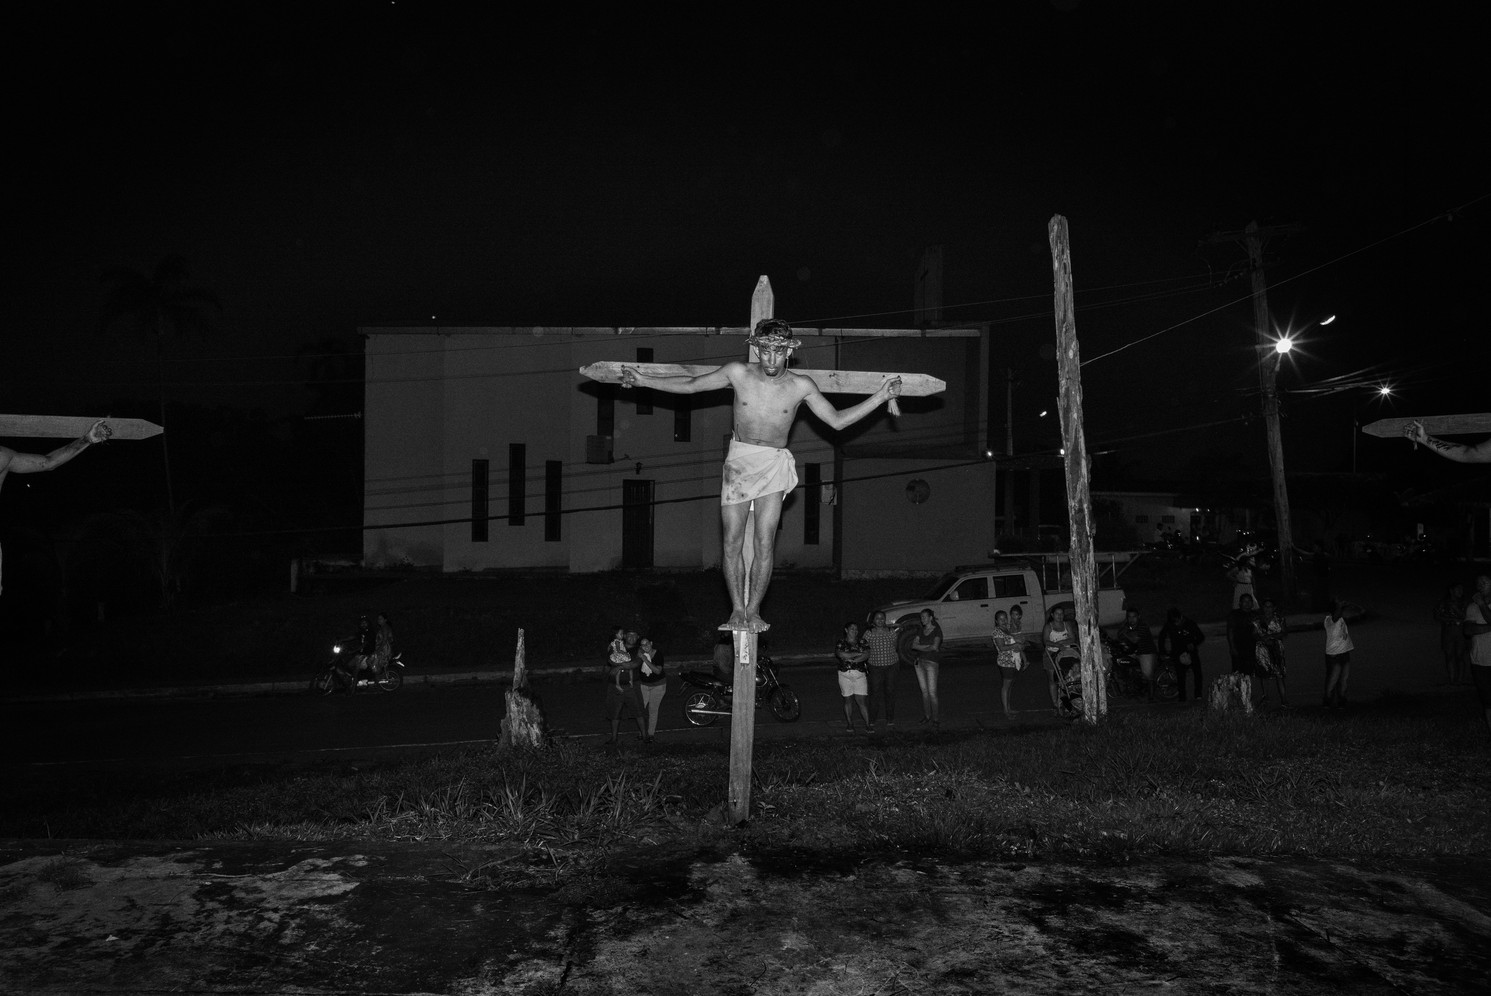 The climactic crucifixion scene of a community Easter nativity play in Careiro Castanho, a small town 100km from Manaus, in Amazonas state, organized by the local Catholic Church. While Brazil remains the world's most populous Catholic nation, it has a significant and fast growing community of Evangelical Christians that today account for about a quarter of the population. In Brazil's Amazon states, Evangelical mega churches with huge congregations are present in urban centres while tiny churches little more than wooden shacks proliferate in isolated river towns only accessible by long boat journeys.